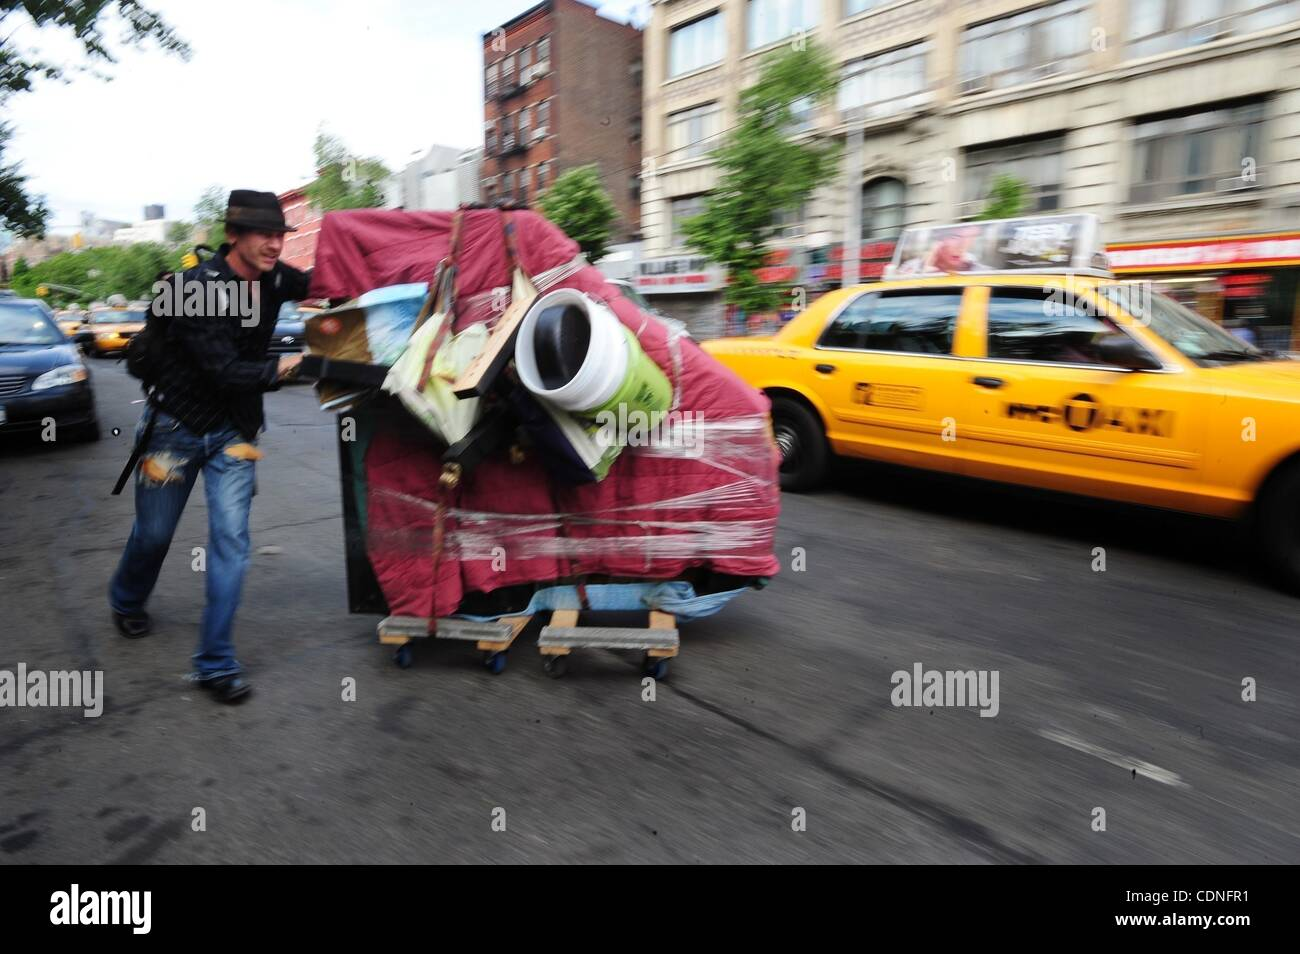 June 4, 2011 - Manhattan, New York, U.S. - Colin wheels the piano up Sixth Avenue. COLIN HUGGINS of The East Village - Stock Image